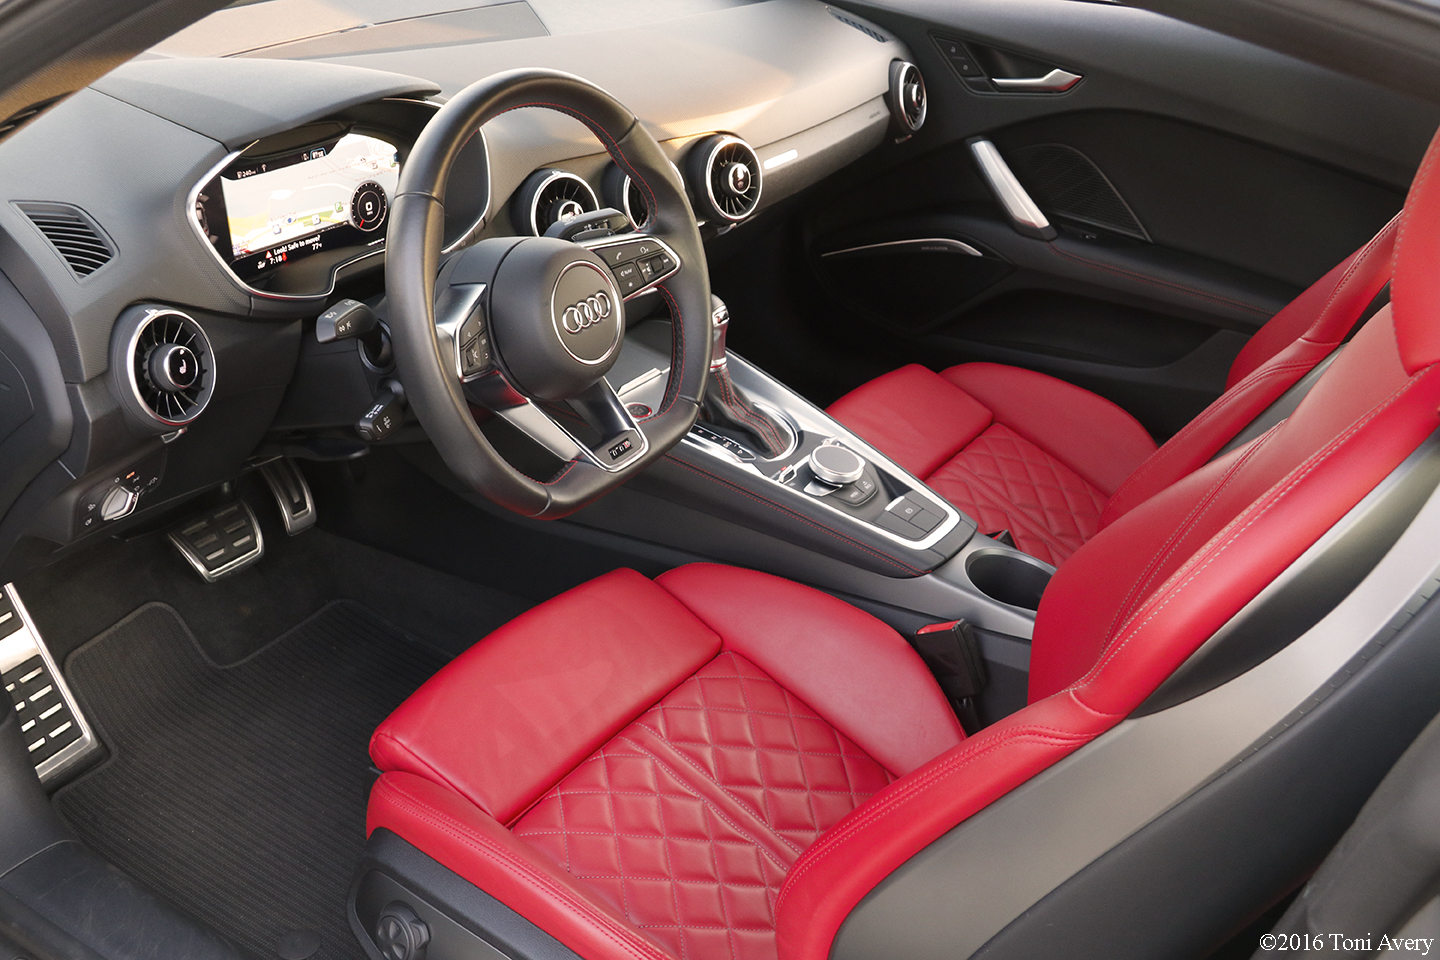 2016 Audi Tts Coupe Interior Girlsdrivefasttoo